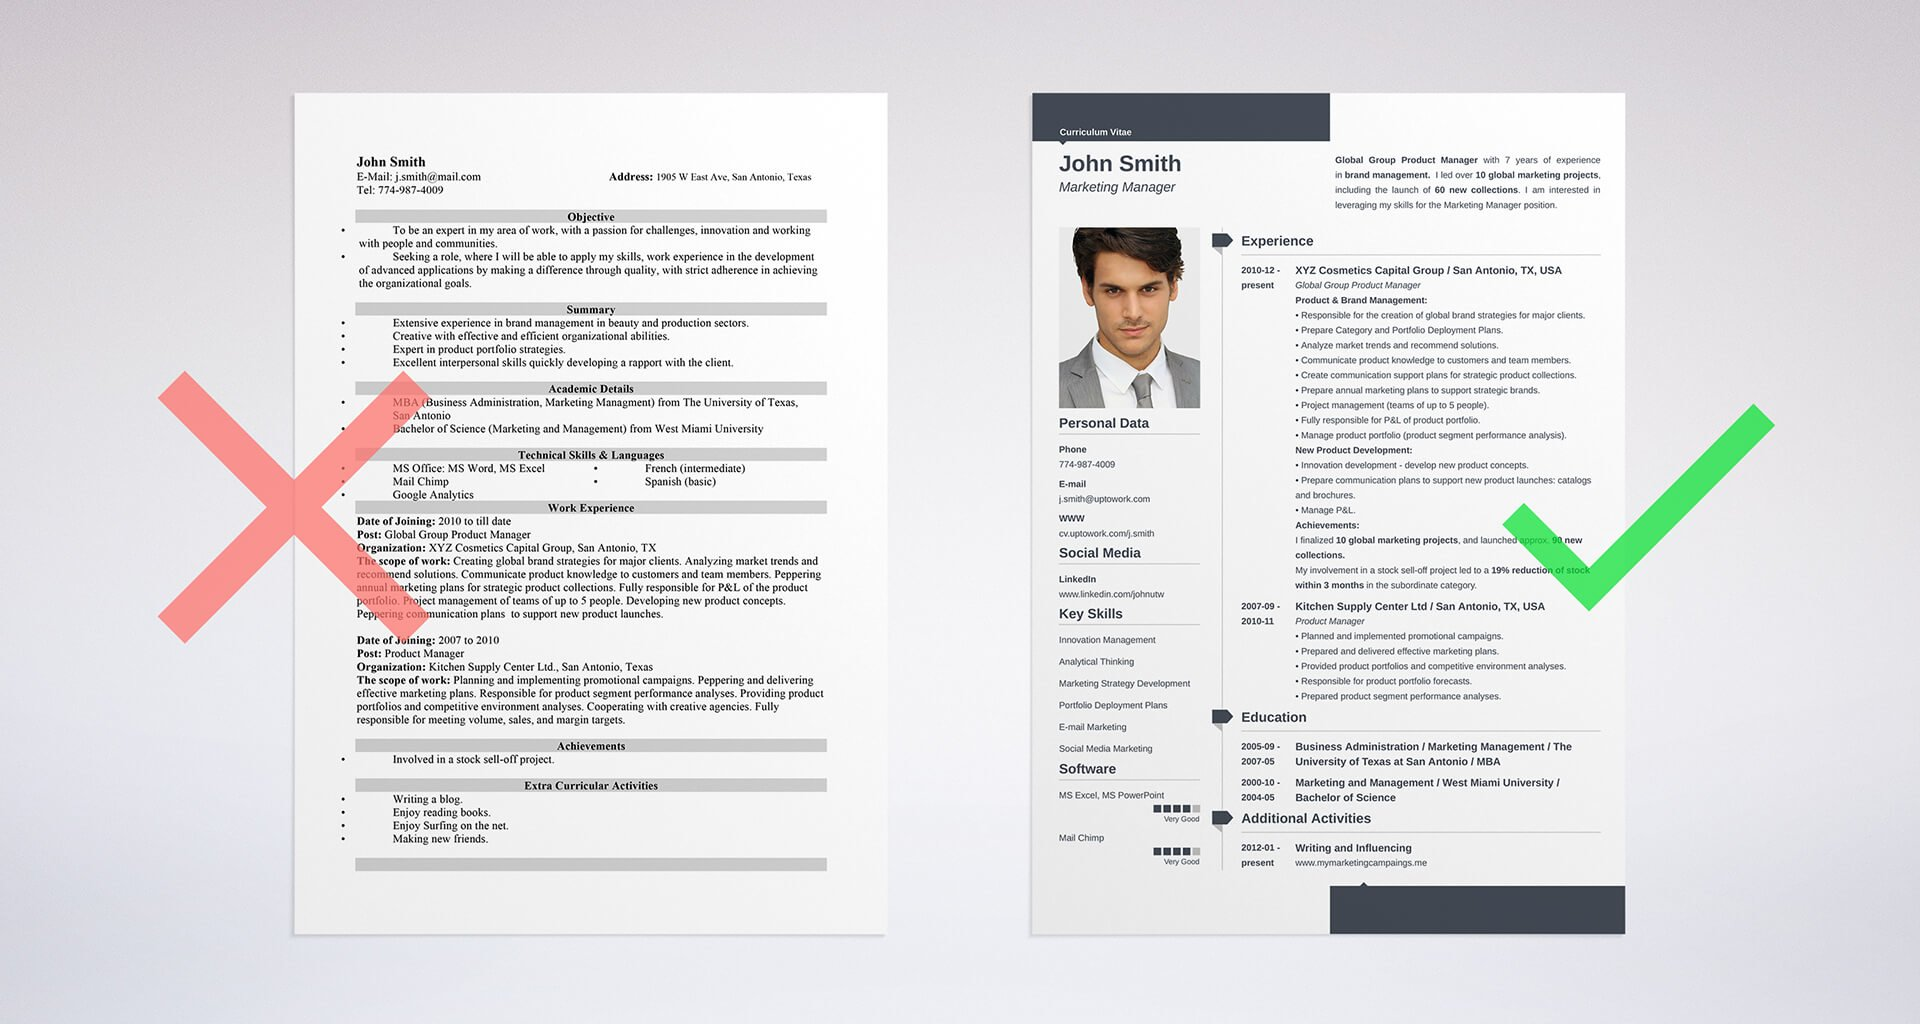 30 best examples of what skills to put on a resume proven tips - Resume Qualifications